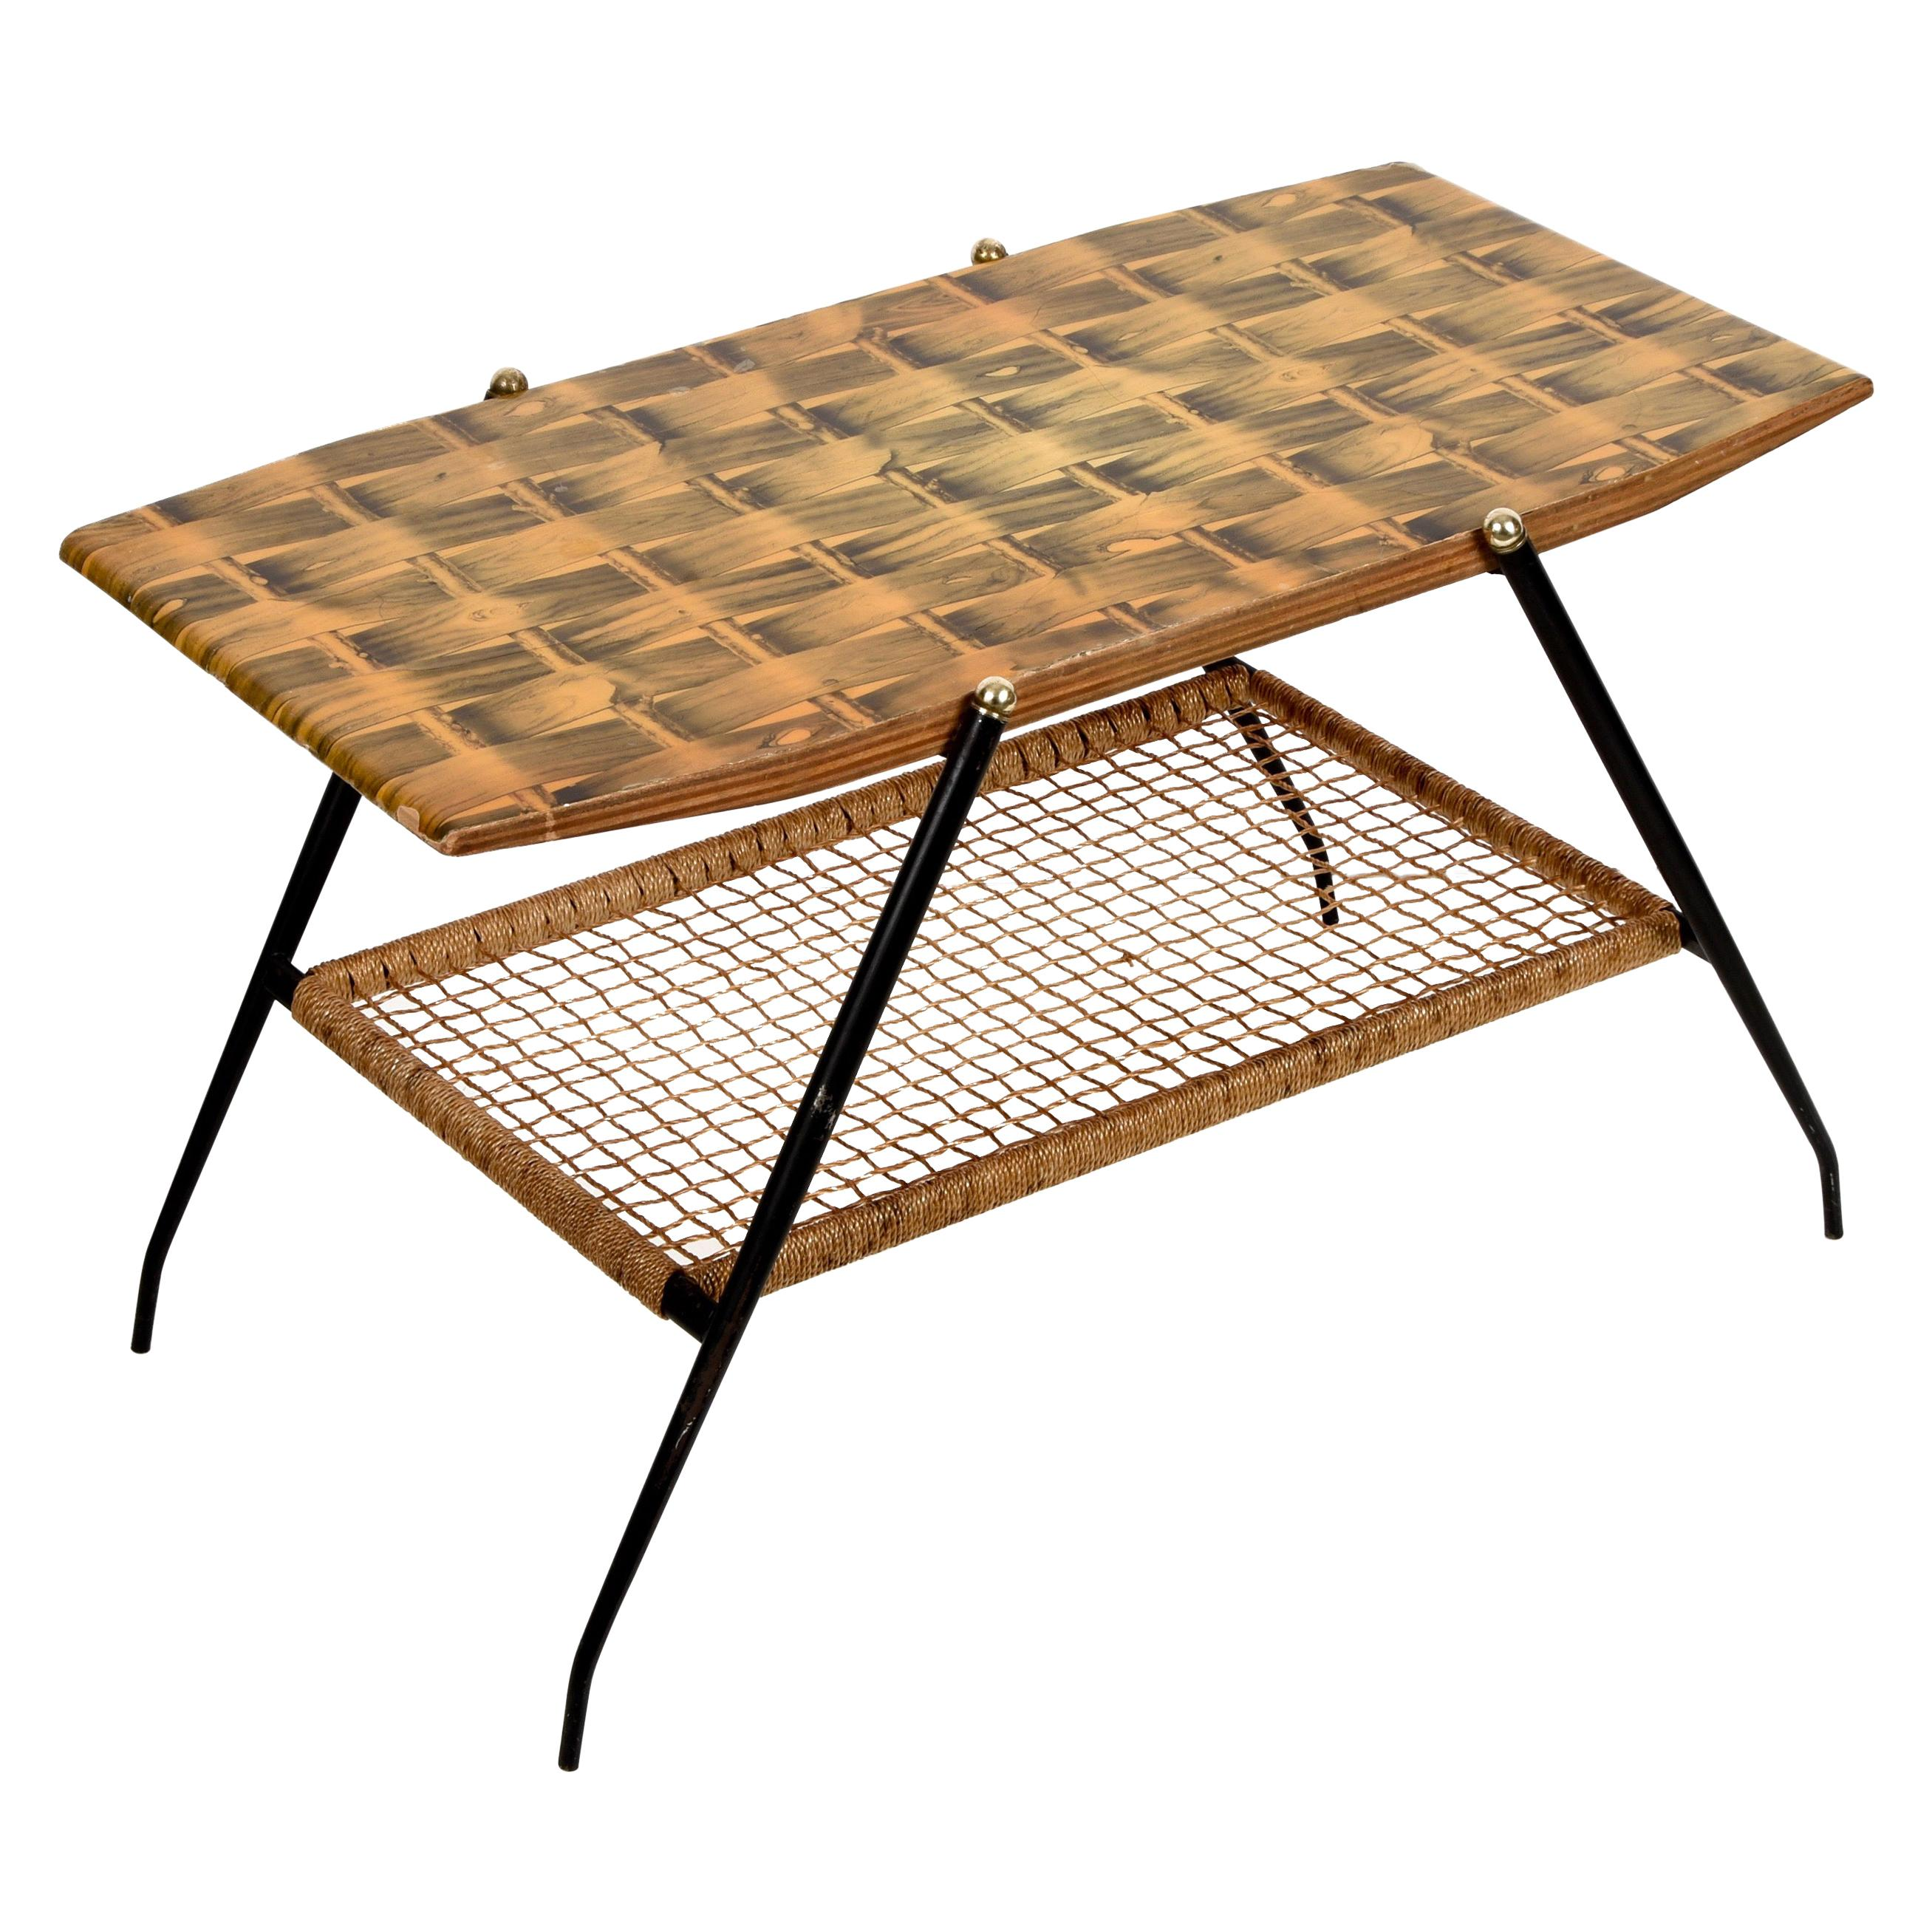 Midcentury Wood and Metal Italian Coffee Table with Brass Magazine Rack, 1950s